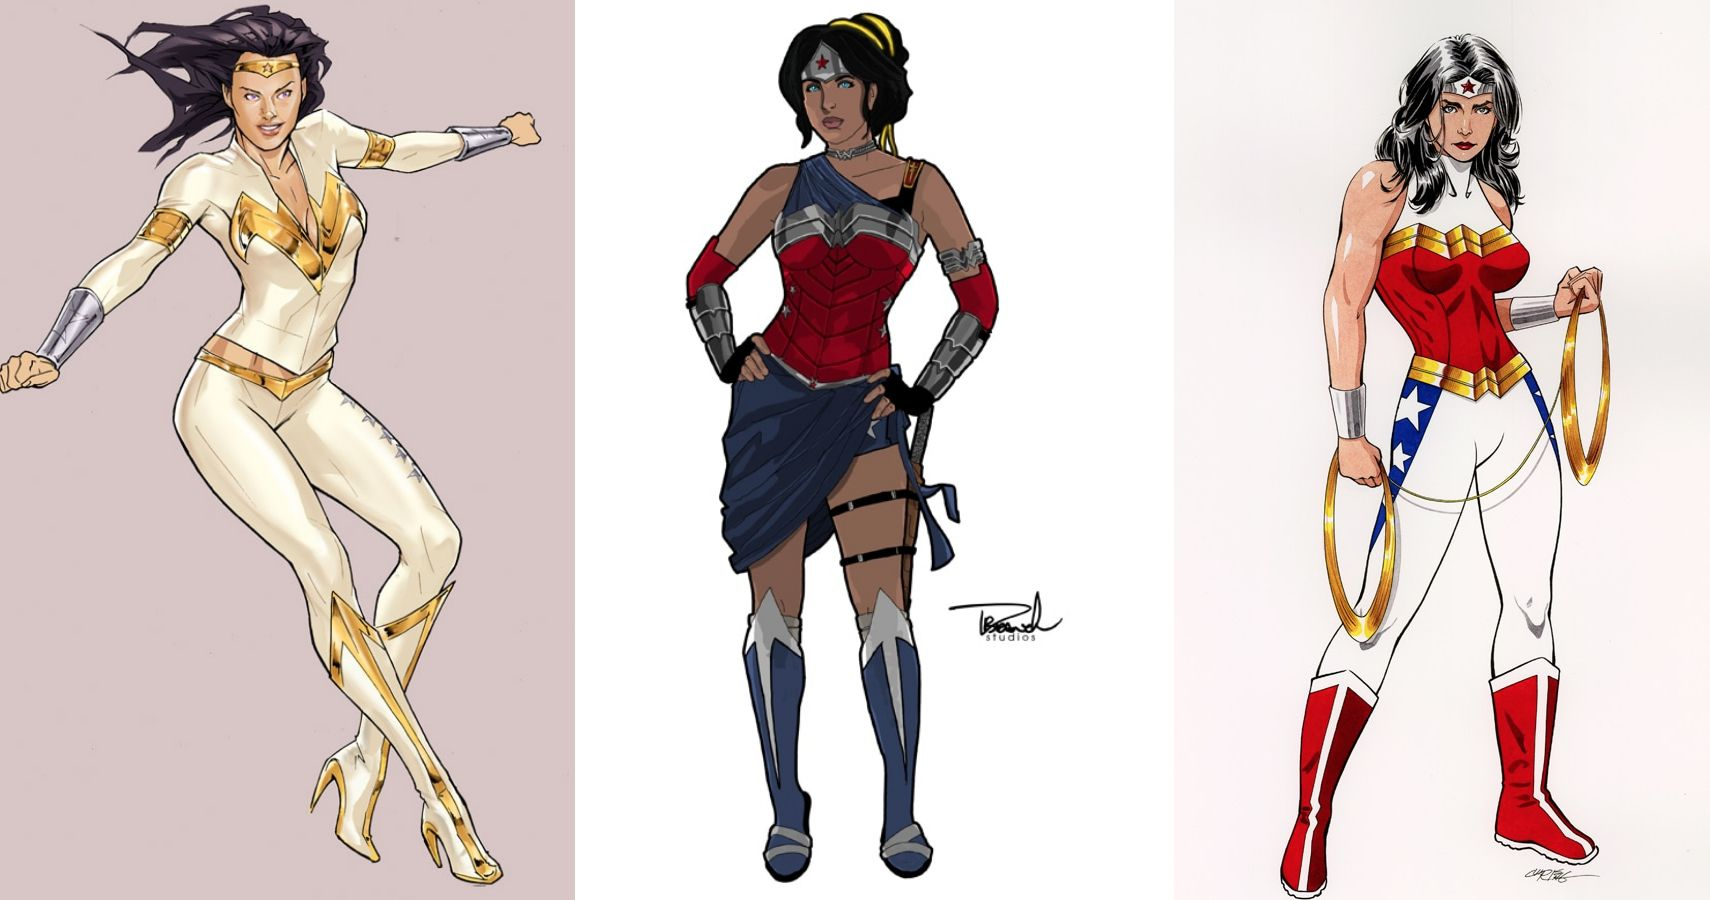 Dc 10 Fan Redesigned Wonder Woman Costumes That Are Better Than The Original